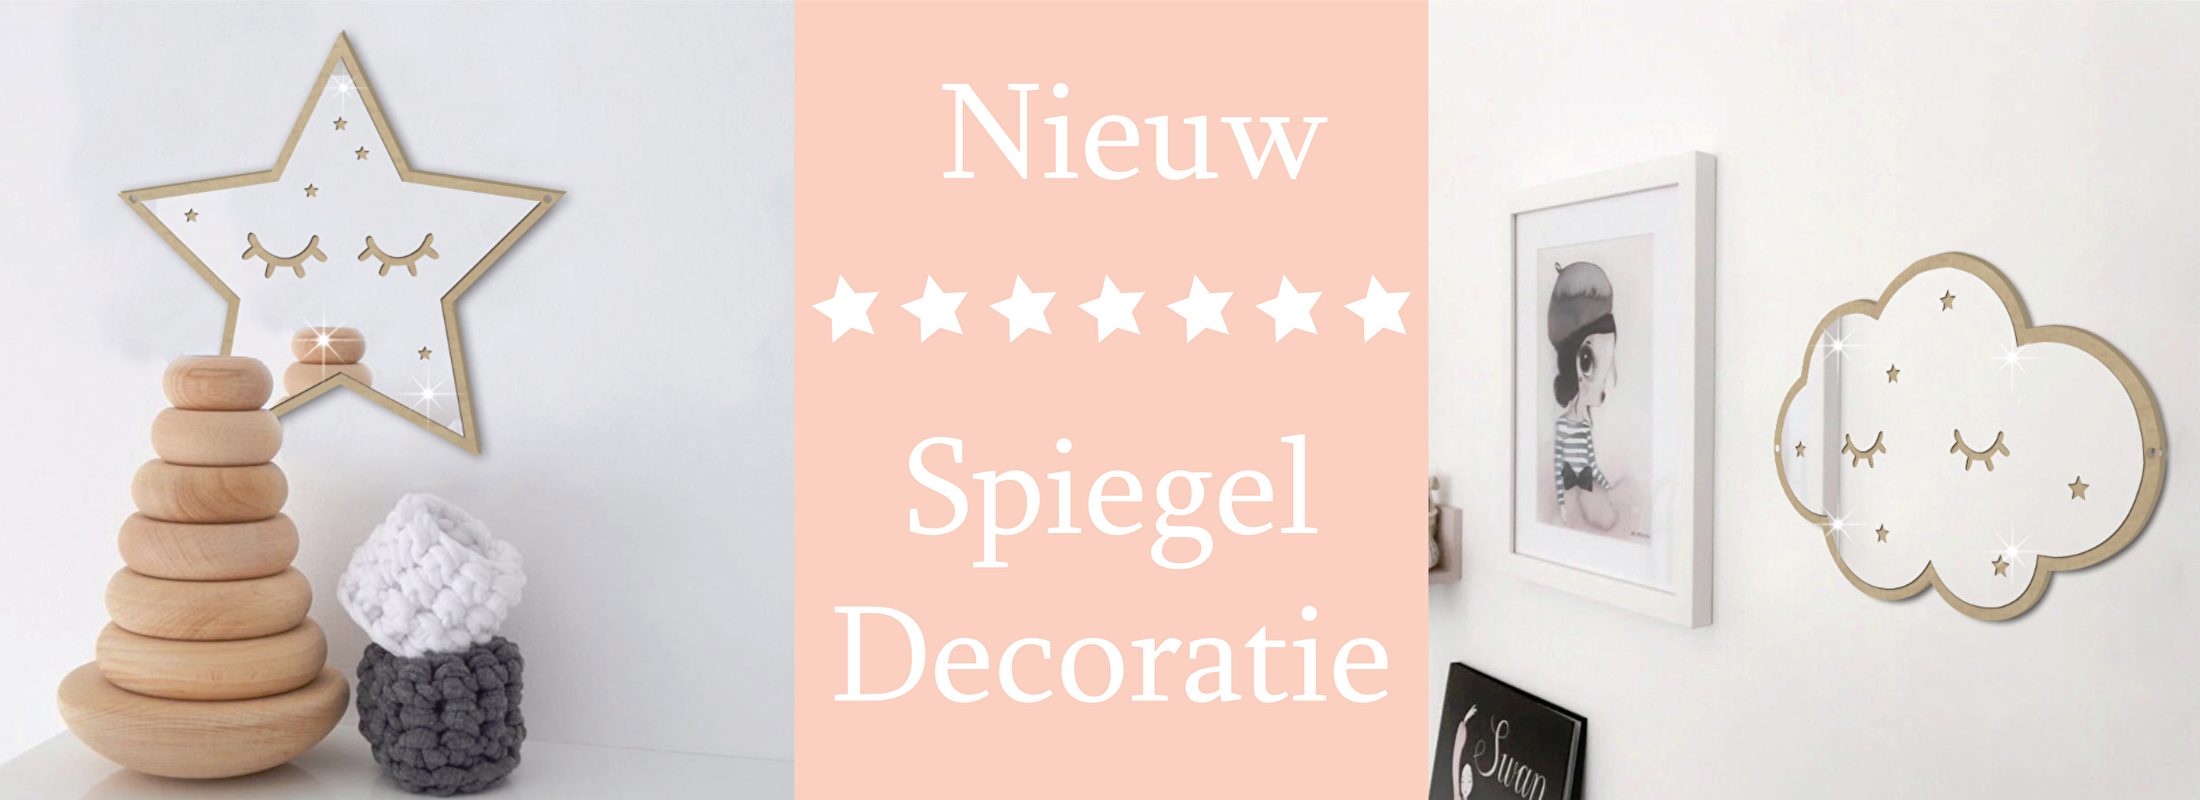 Kinderkamer spiegel decoratie